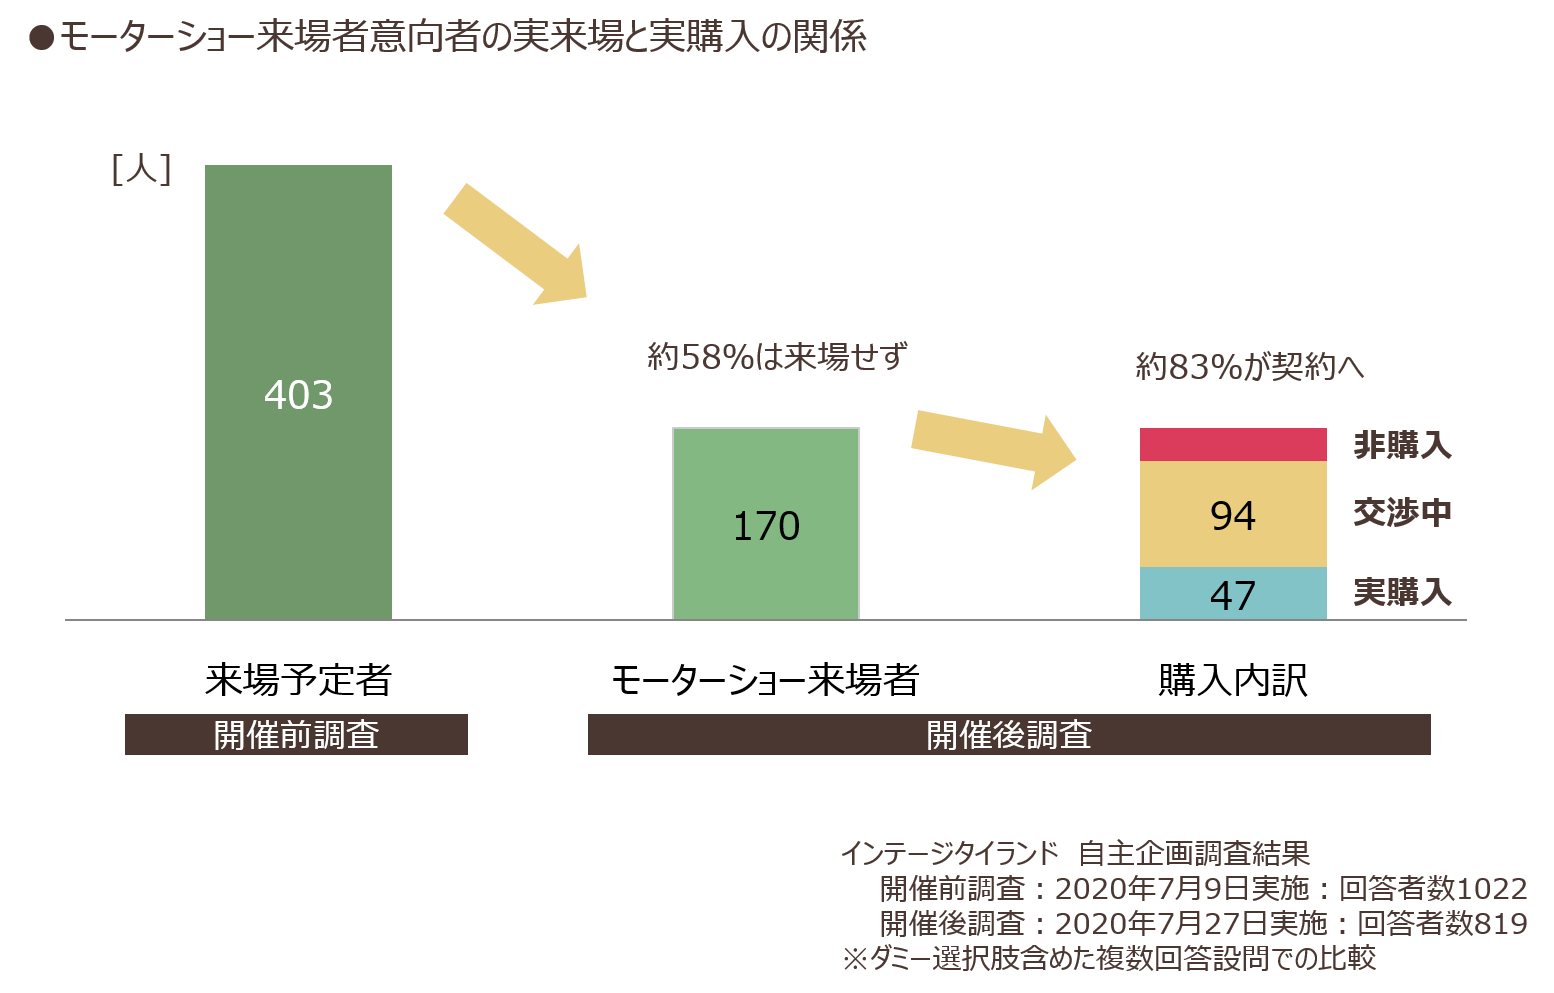 asia-carbusiness-3_02.png